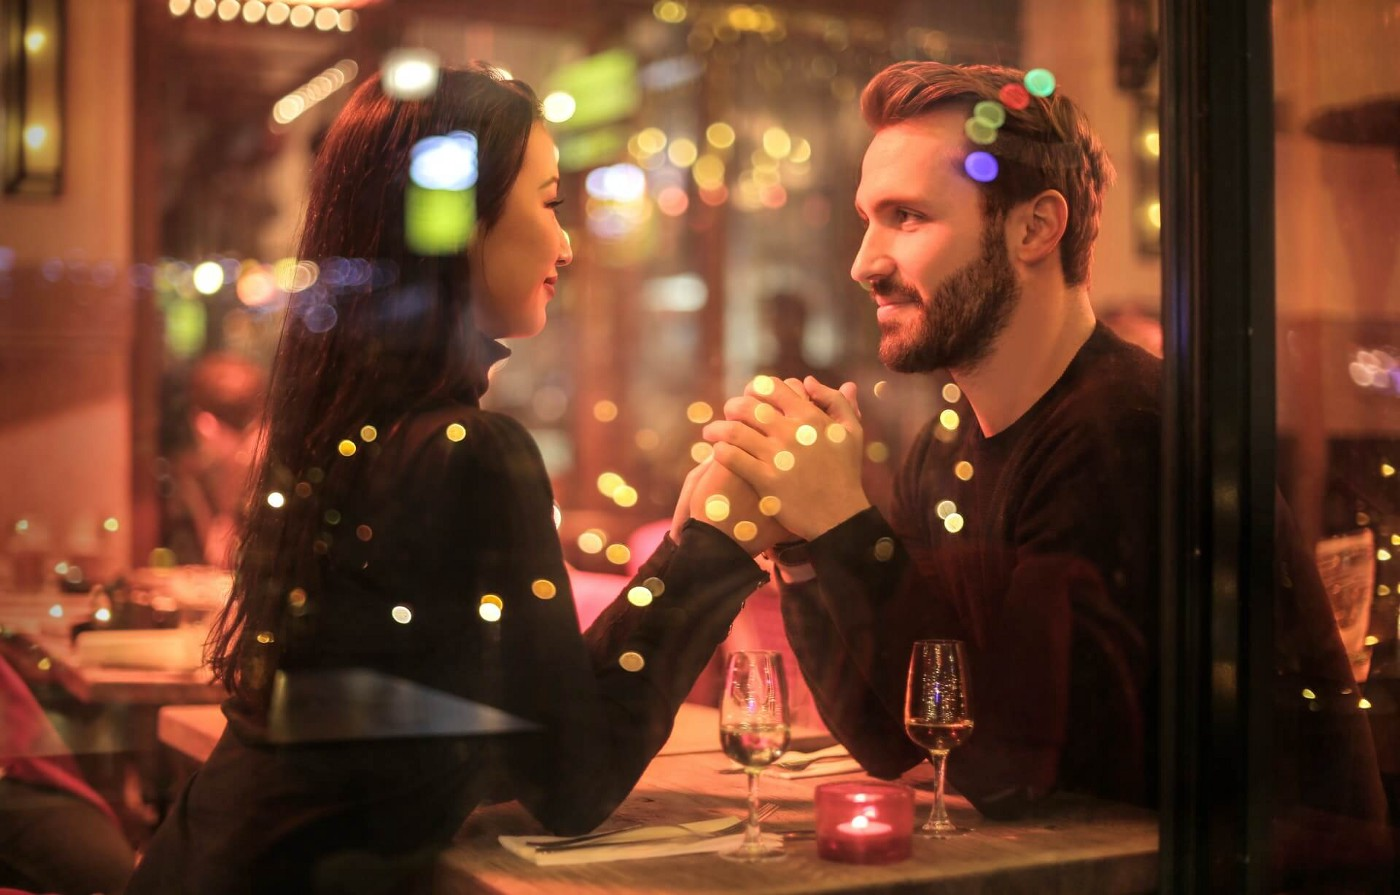 Couple holding hands over a dinner table while looking in each other's eyes depicting how true love happens at first sight.